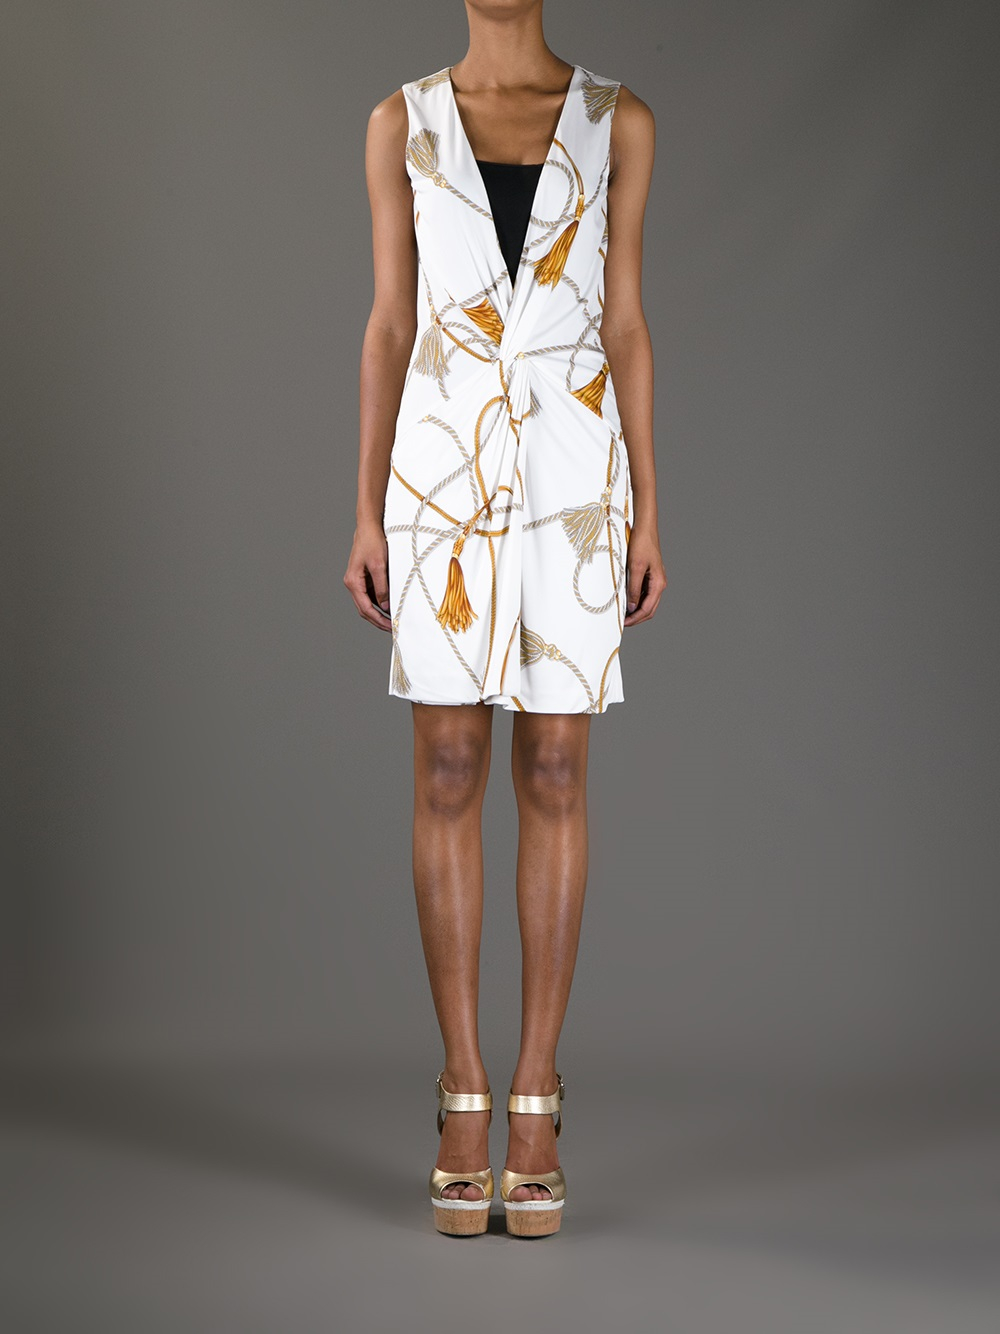 Gucci Rope Print Sleeveless Dress In White Lyst